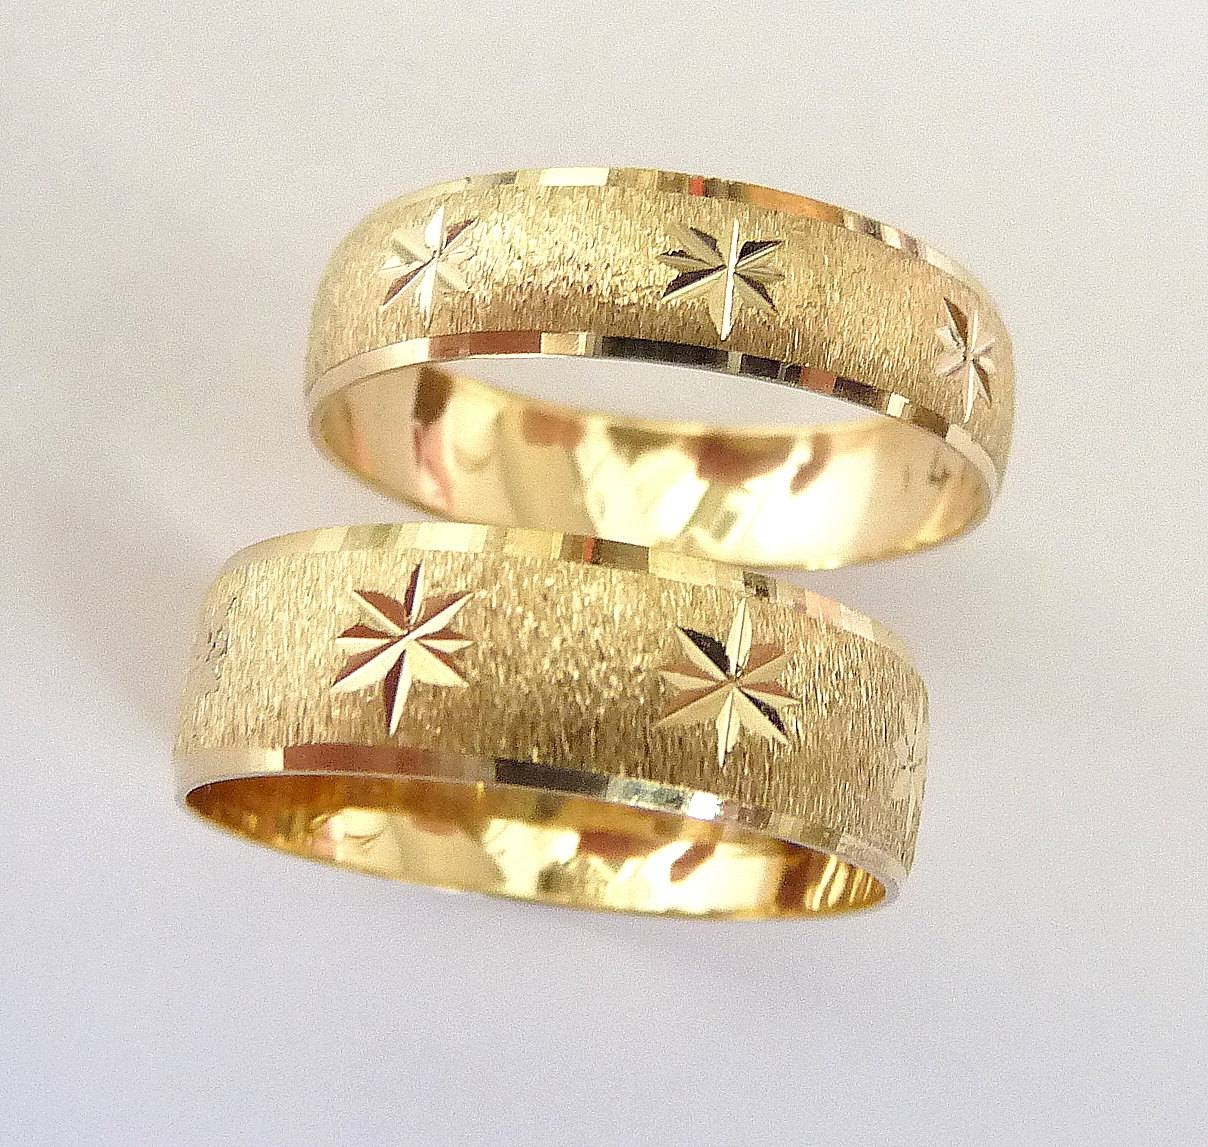 Wedding Rings Set Gold Men And Women Wedding Bands With Stars In Wedding Rings Gold For Women (View 12 of 15)